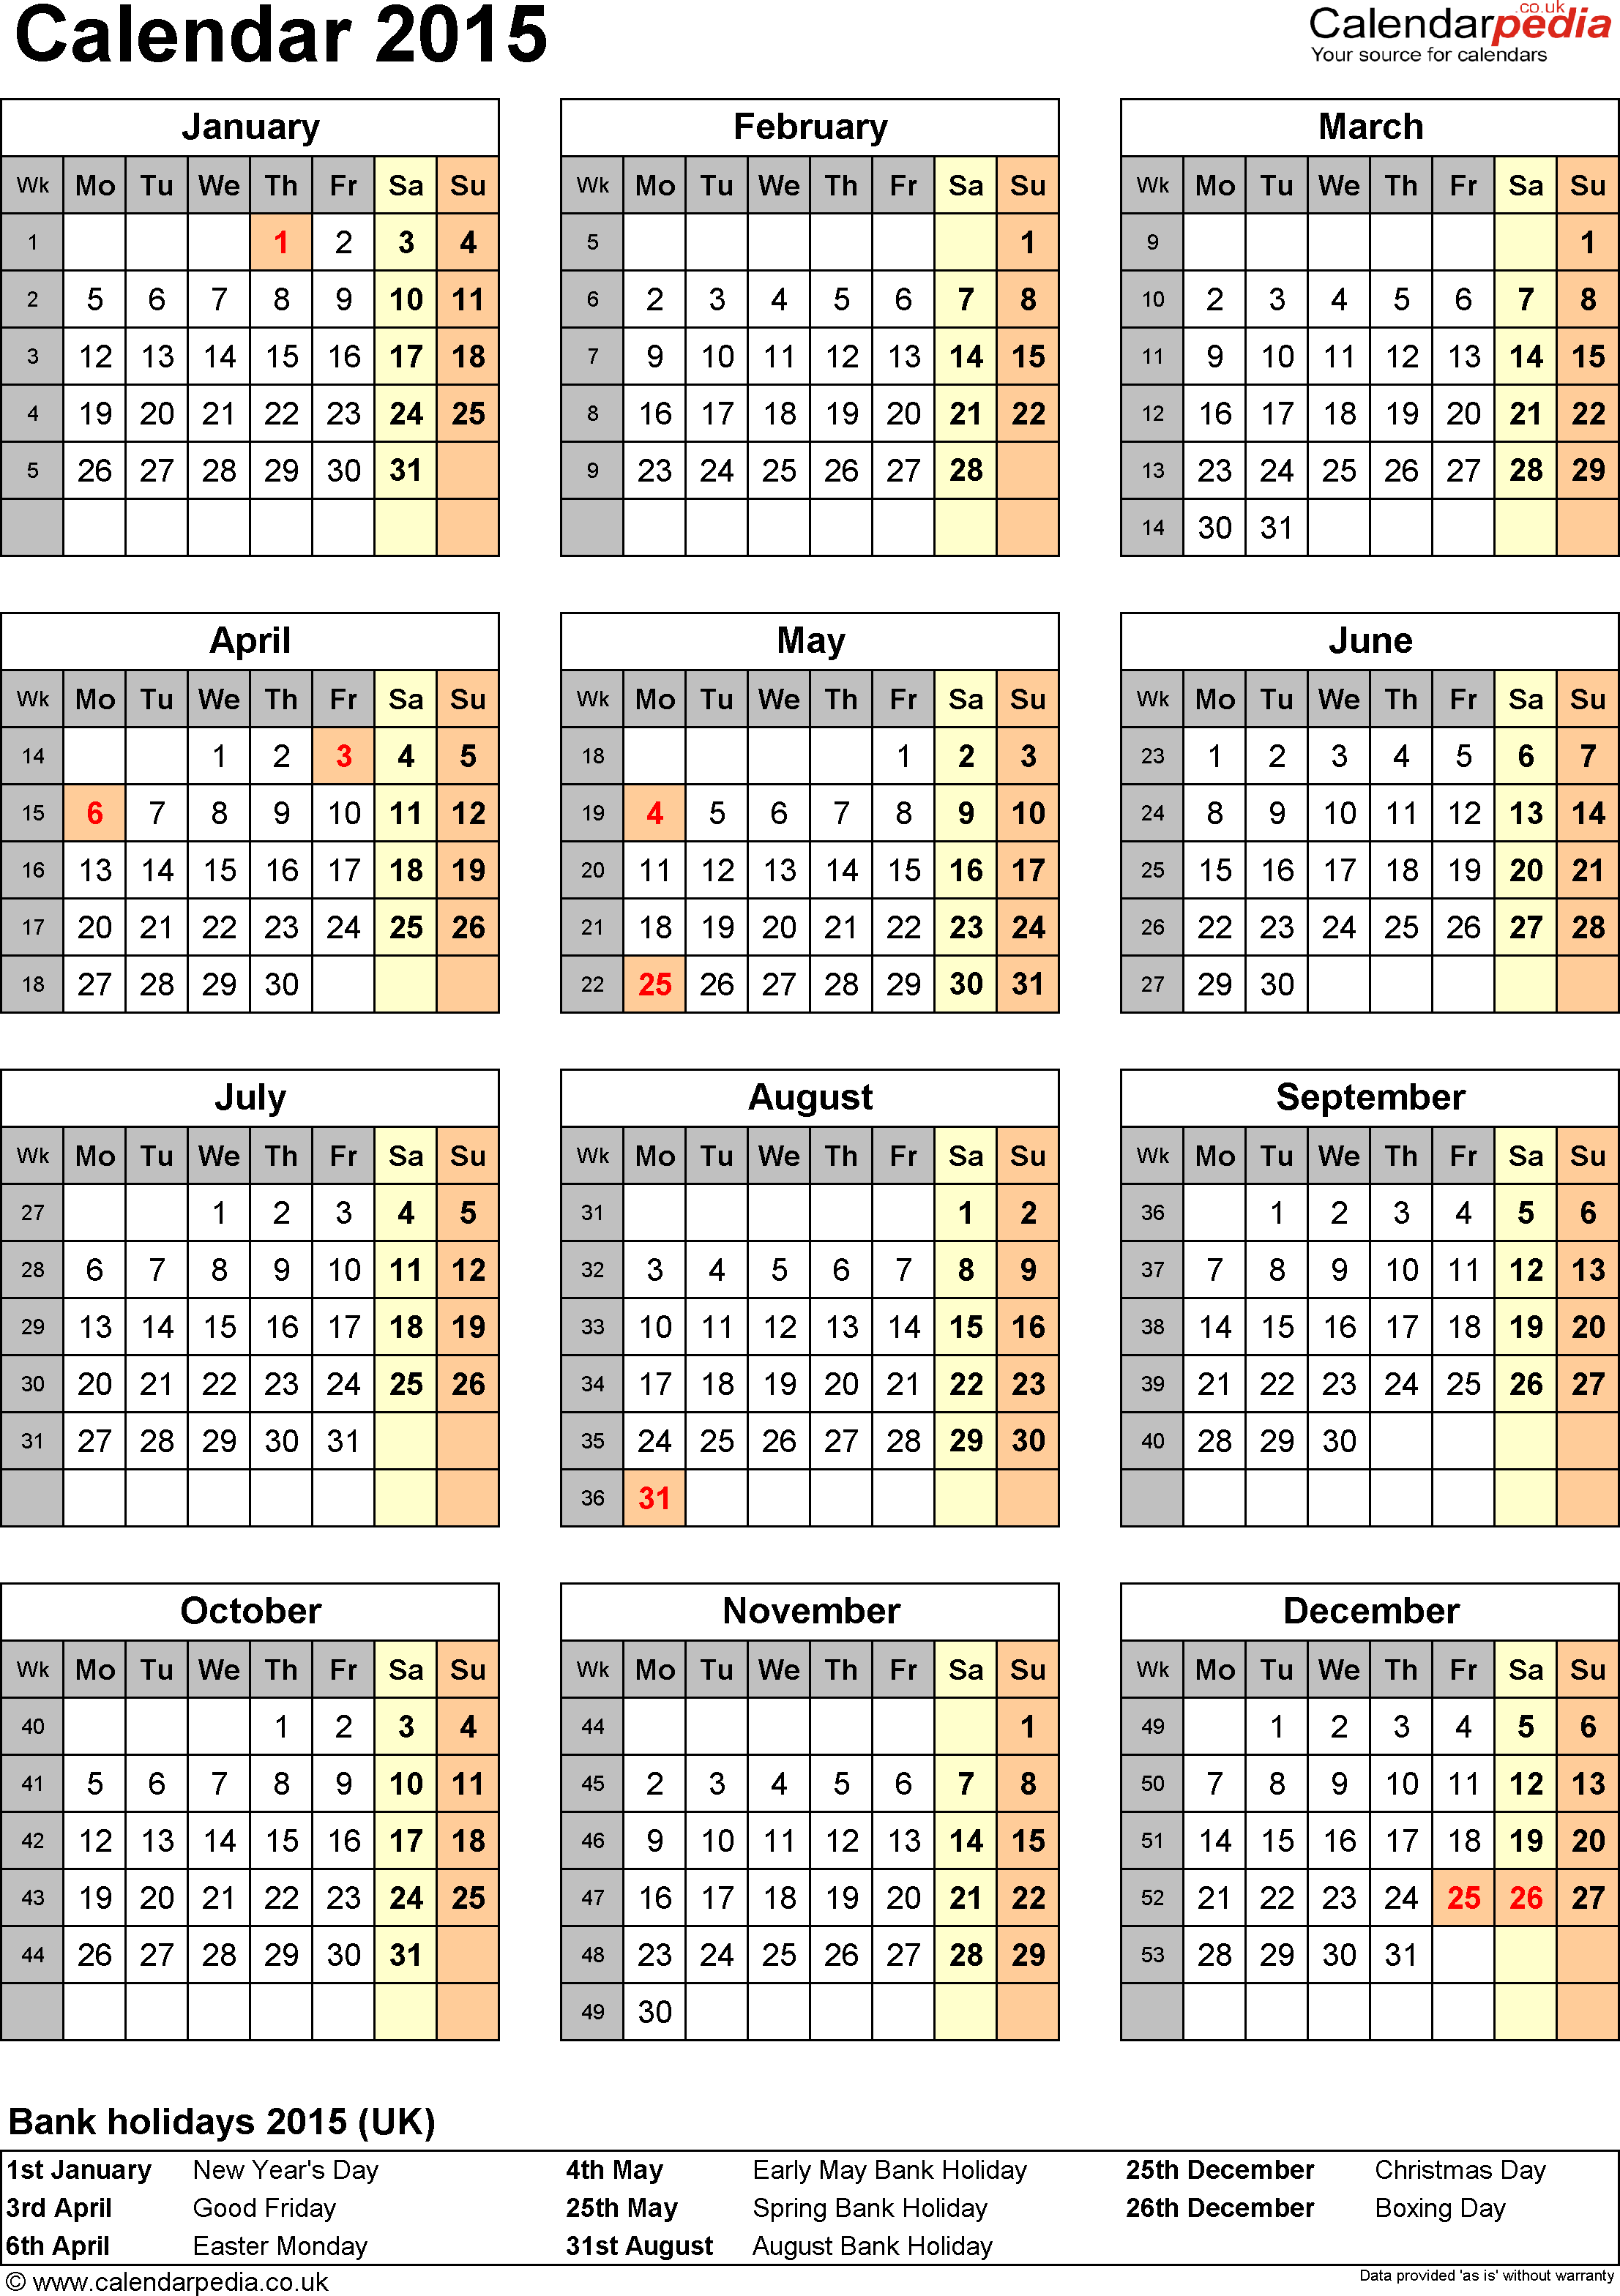 Template 10: Yearly calendar 2015 as Word template, portrait orientation, one A4 page